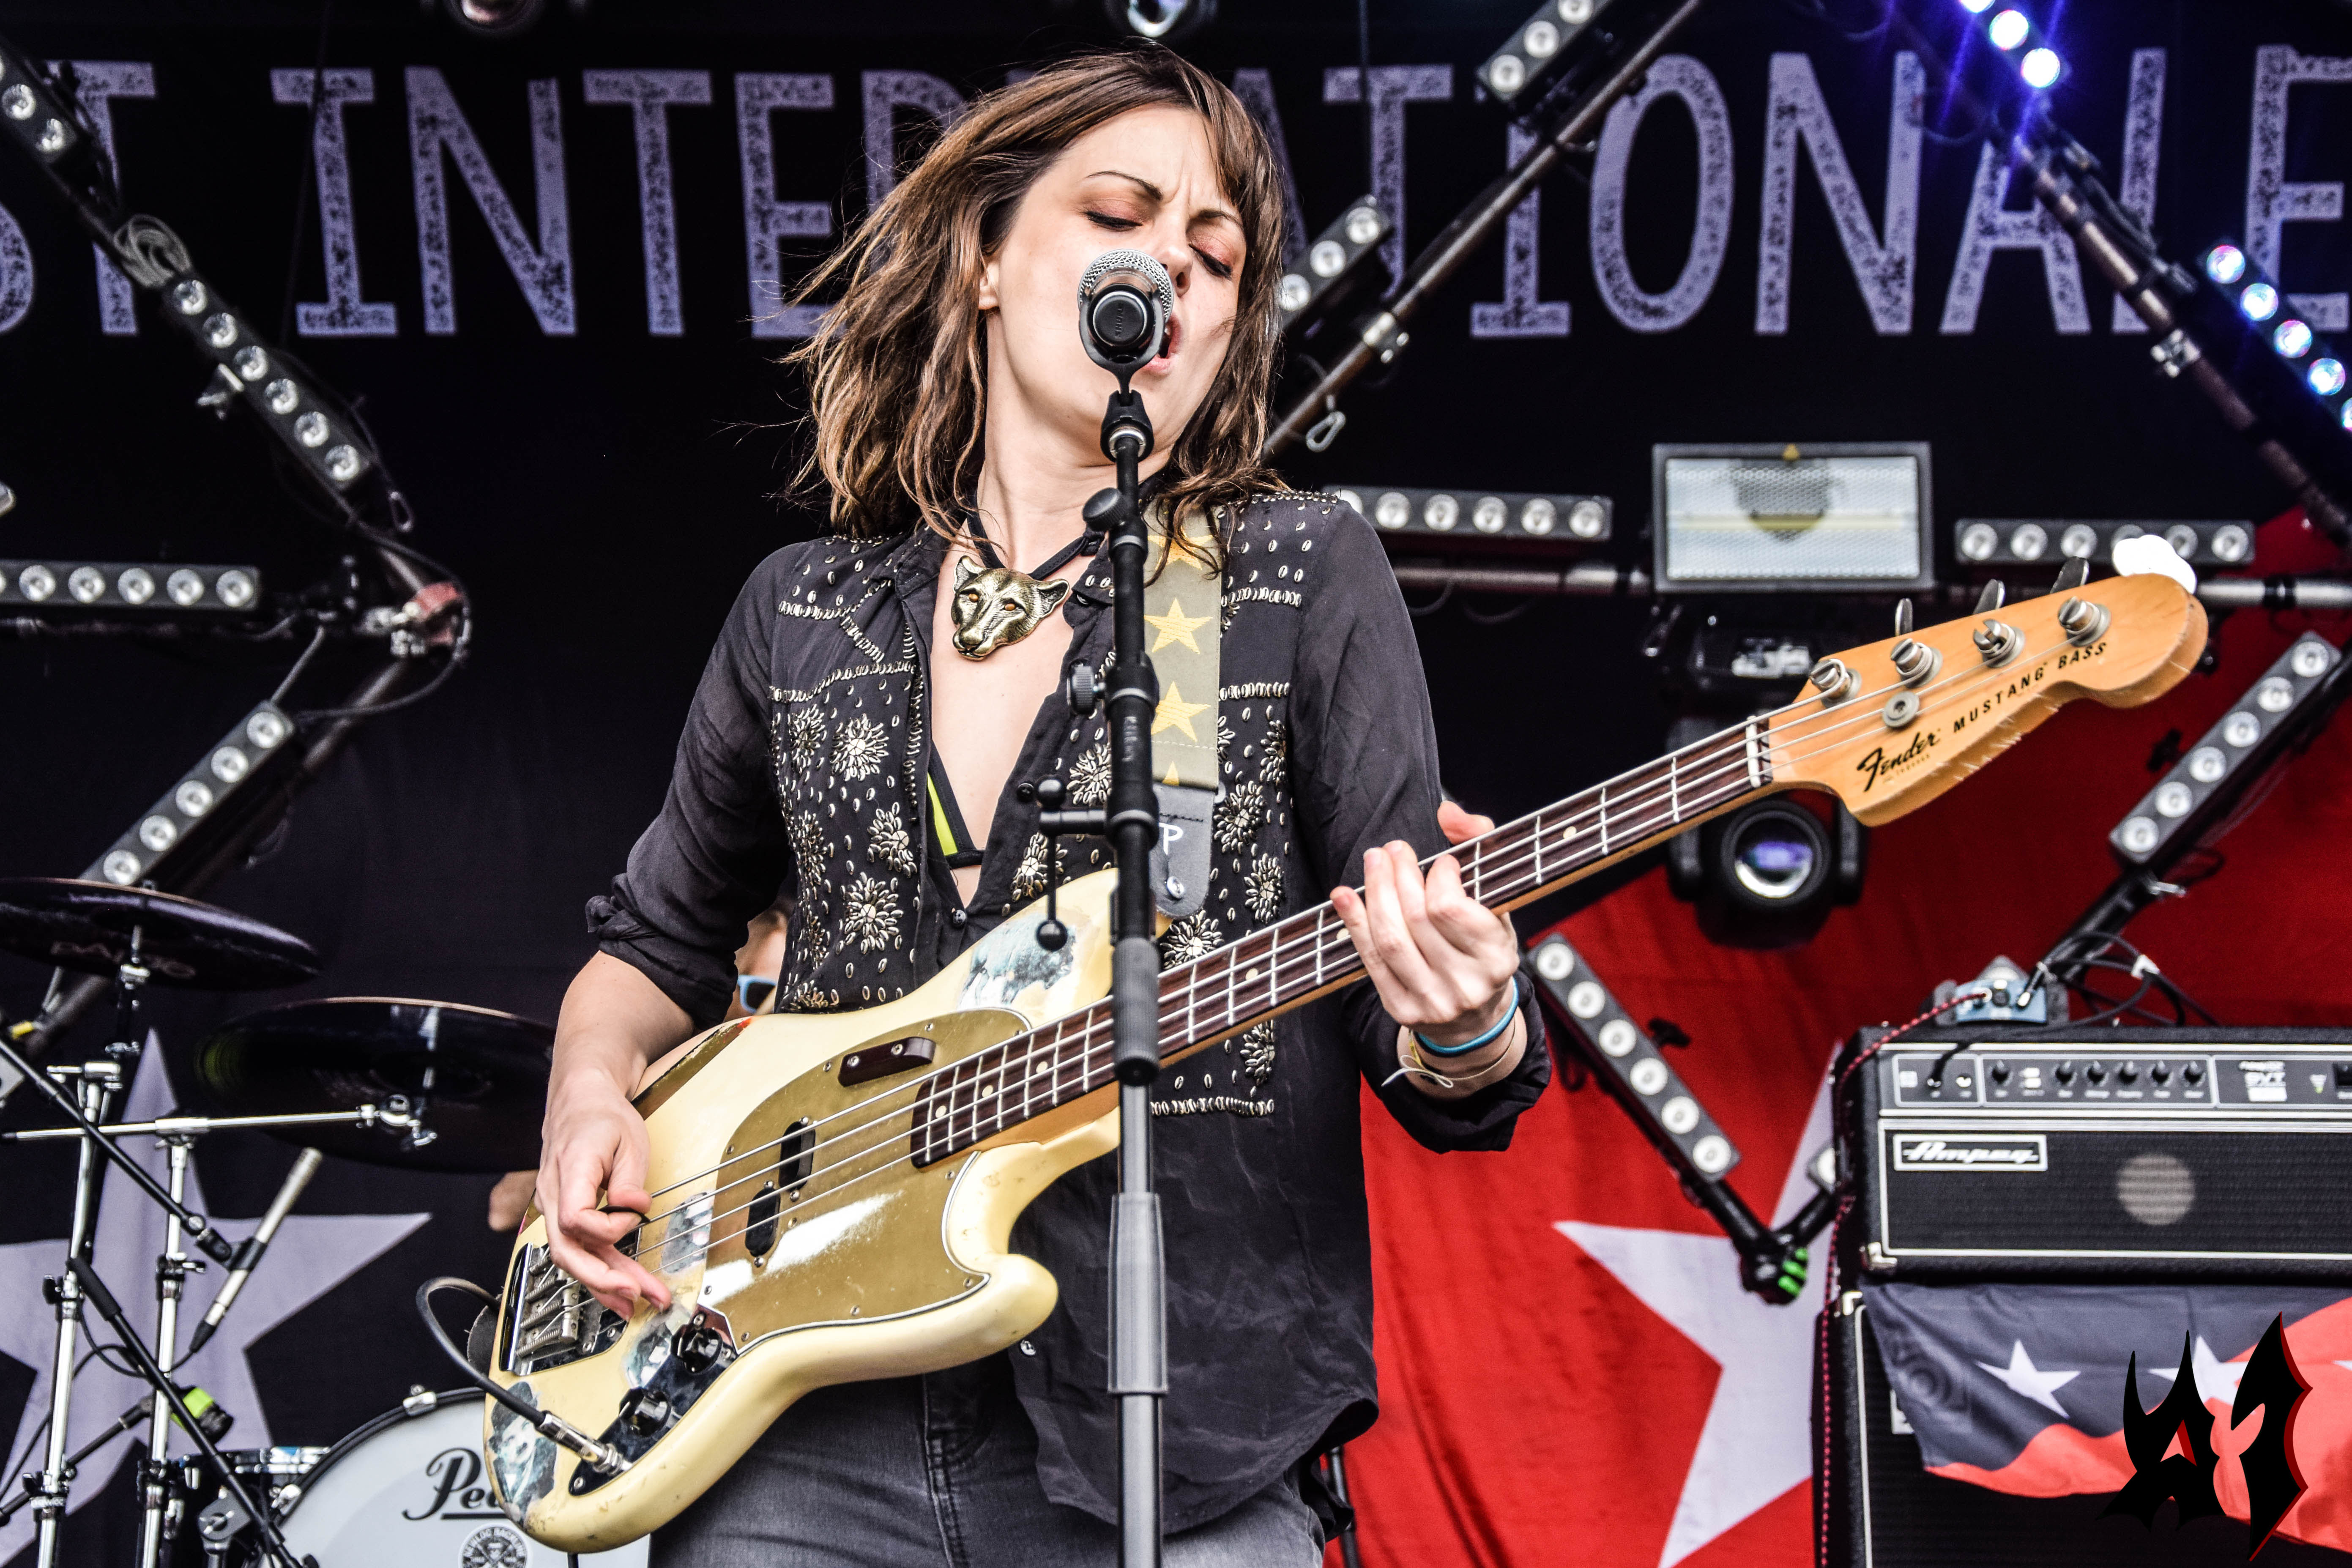 Donwload 2018 – Day 3 - The Last Internationale 3